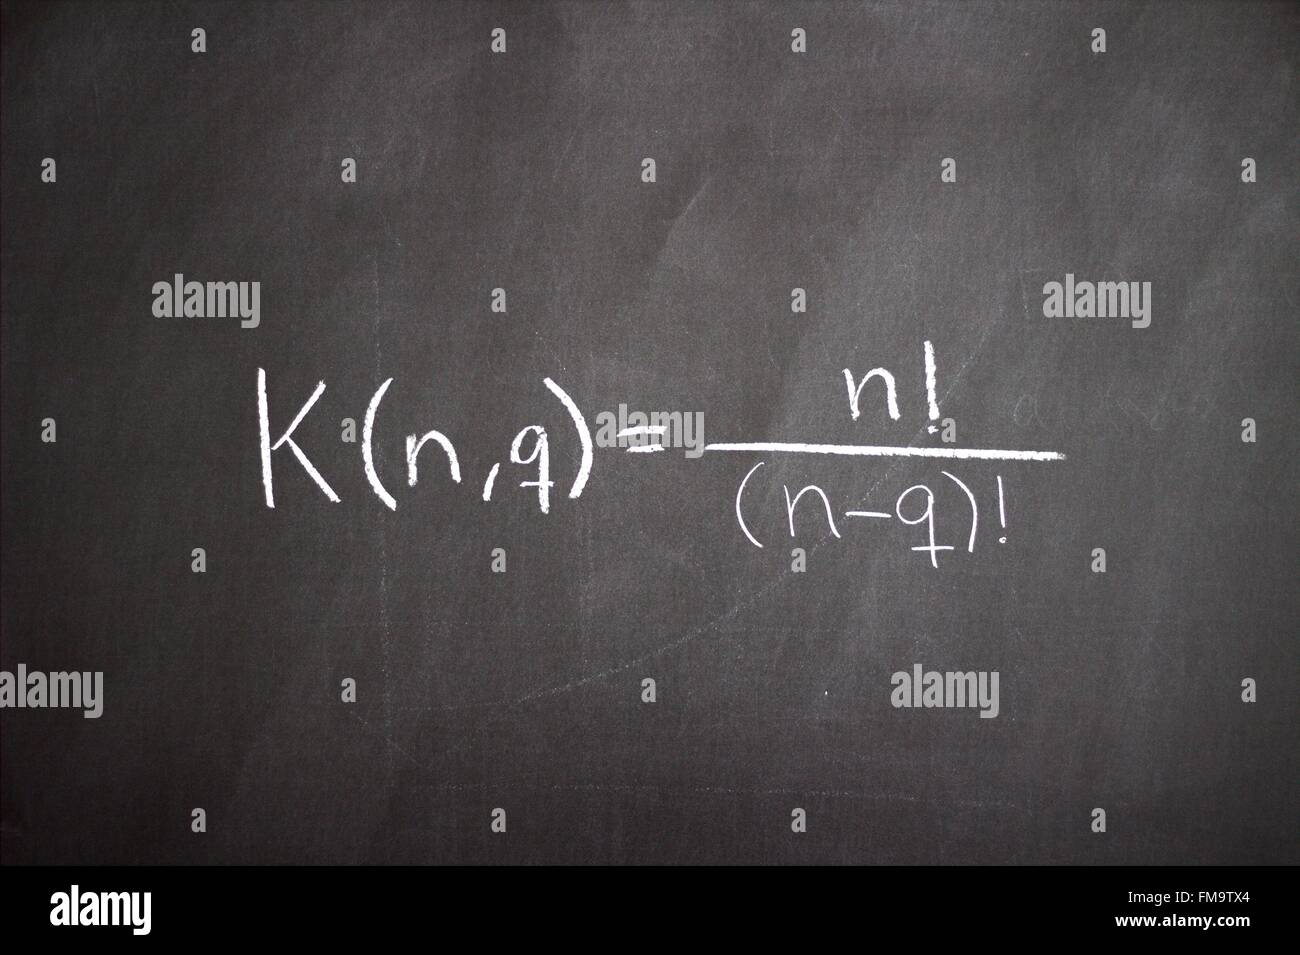 Studying the science of mathematics and economics on a blackboard - Stock Image